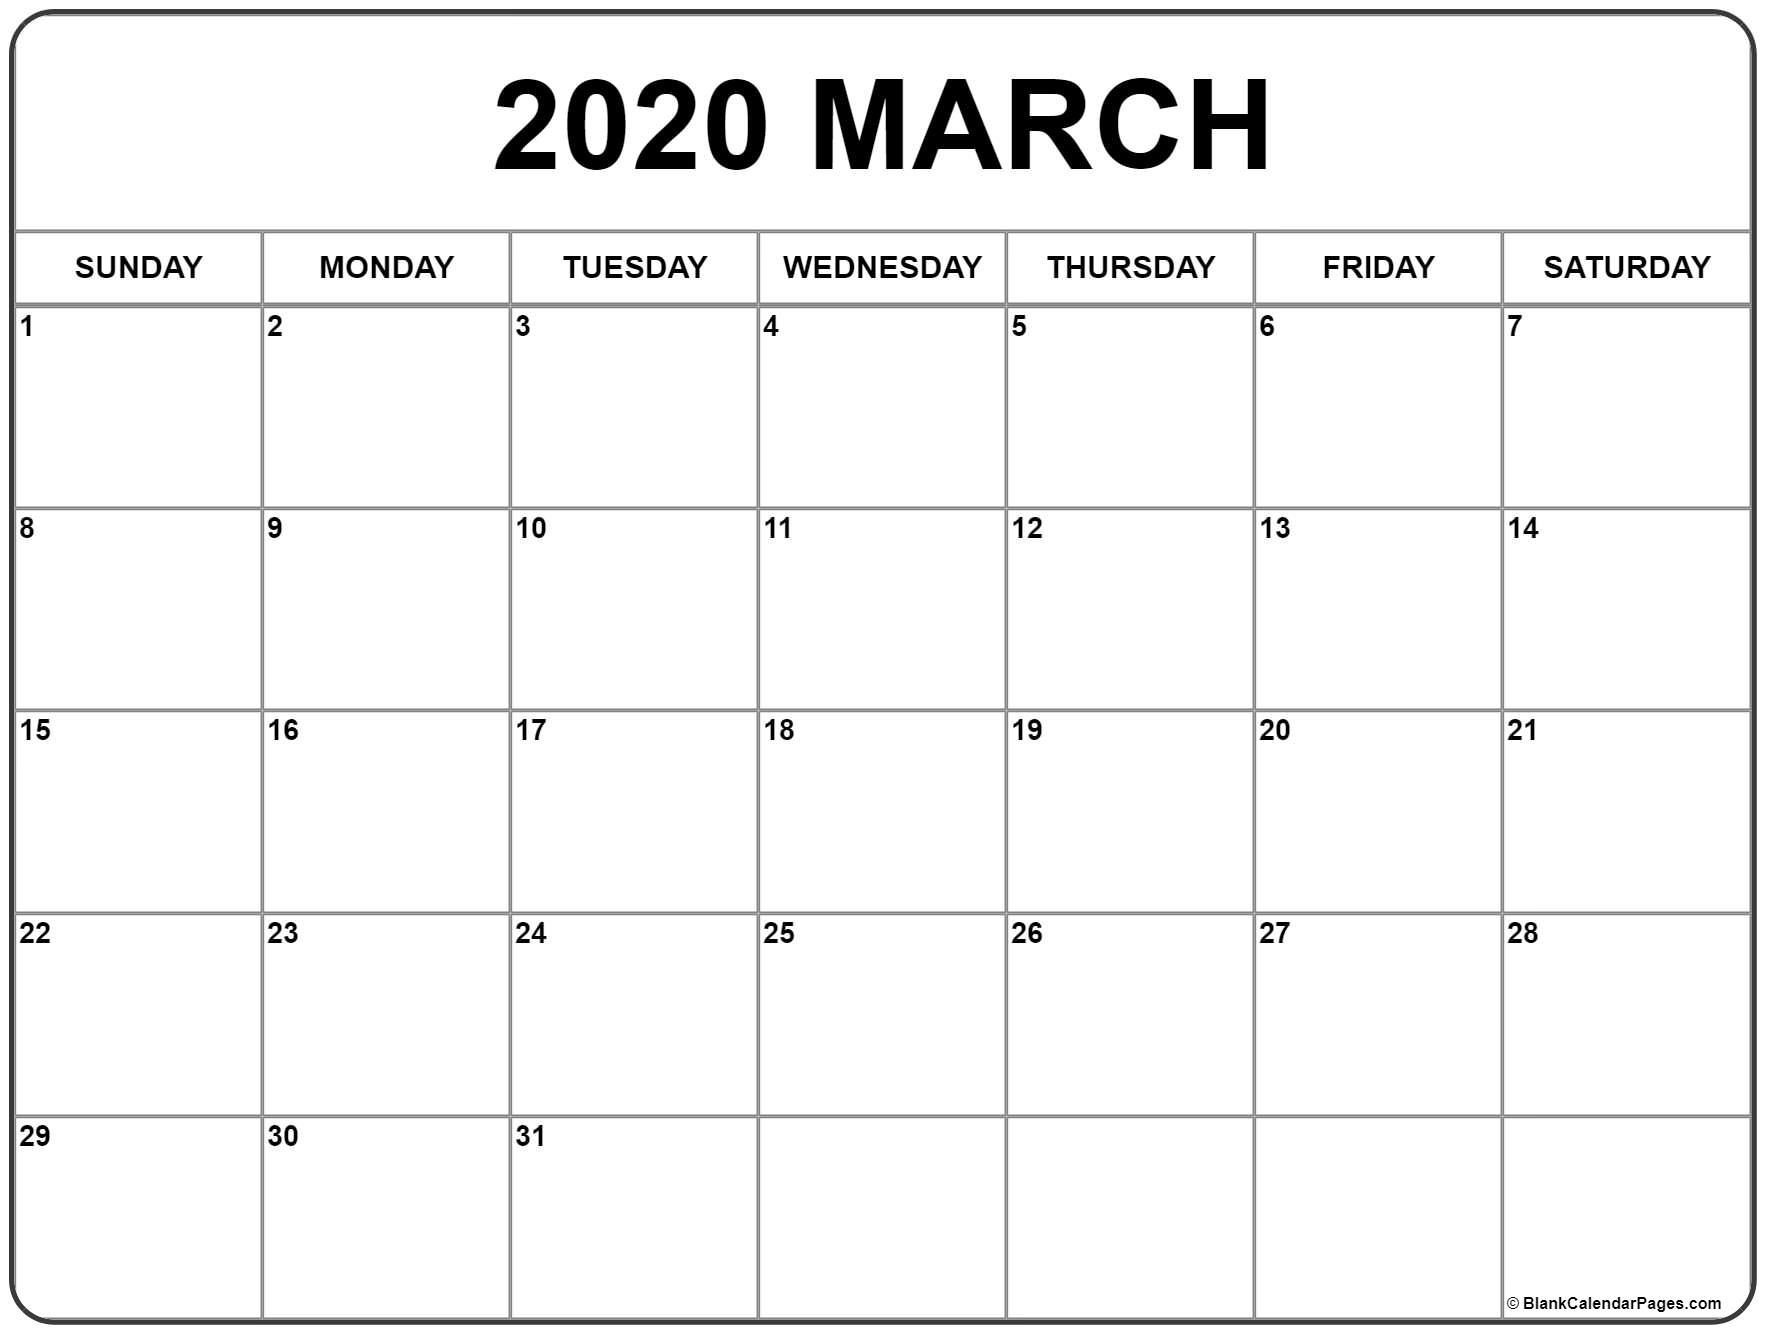 March 2020 Calendar | Free Printable Monthly Calendars pertaining to Free Printable Calander 2020 Victoria Wiht Spaces To Write